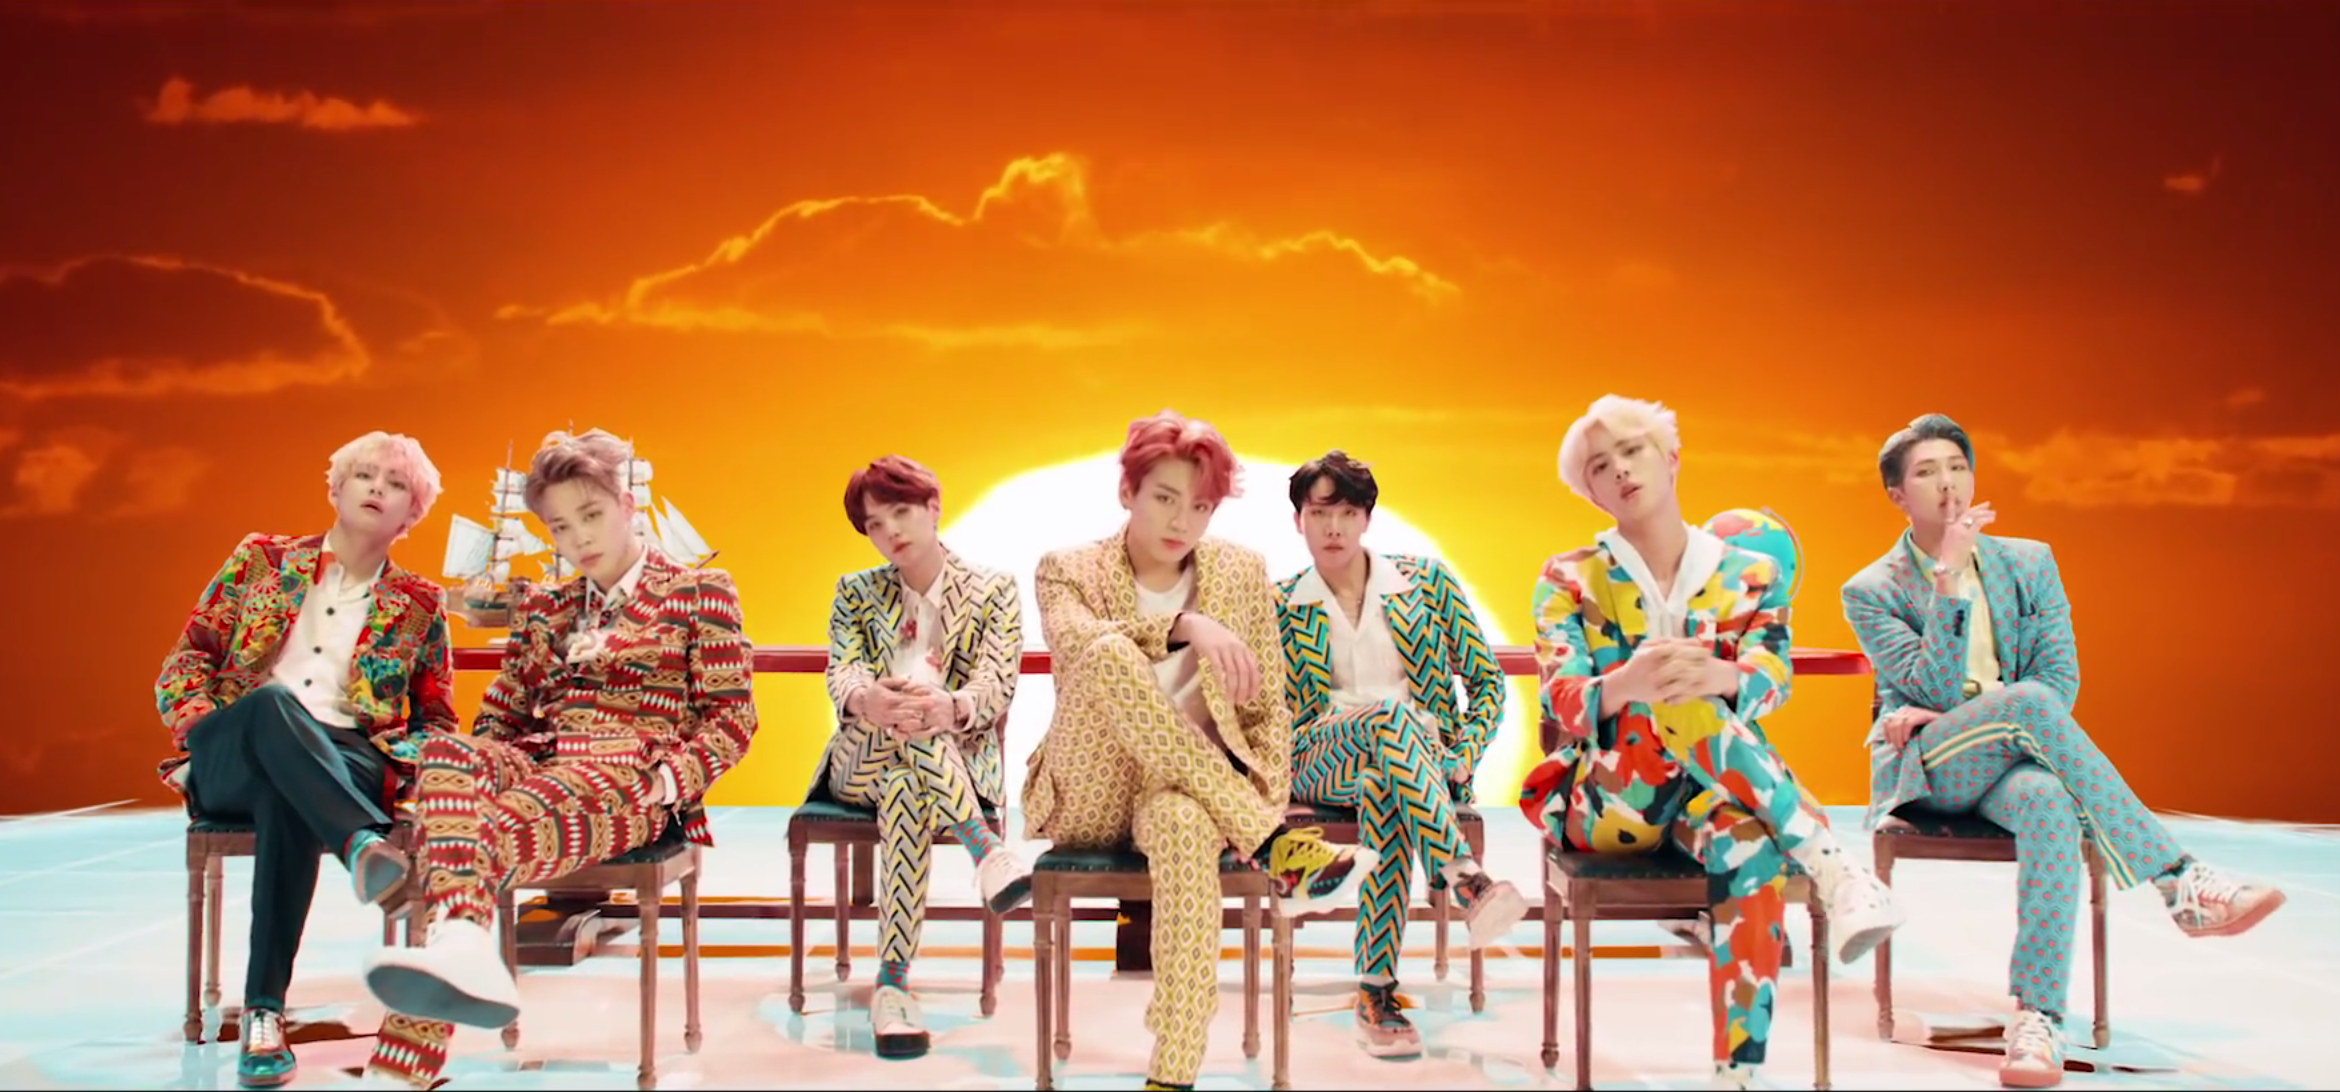 South Korea debates whether successful bands like BTS should be